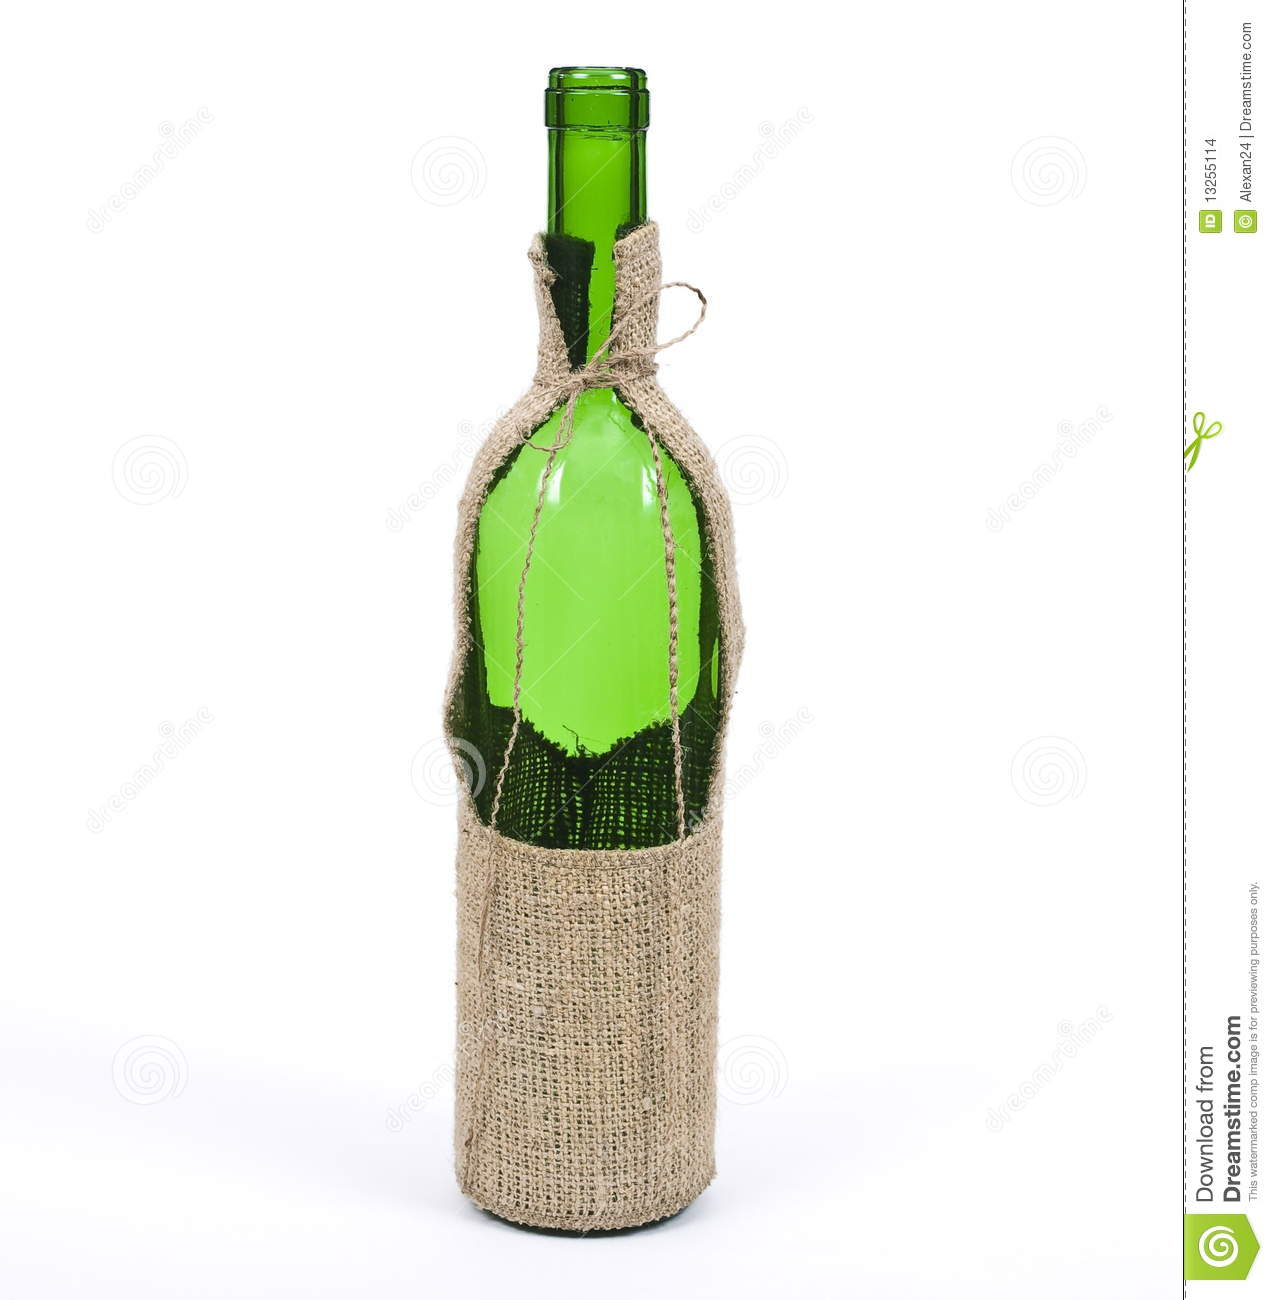 empty wine bottle in sackcloth material stock images